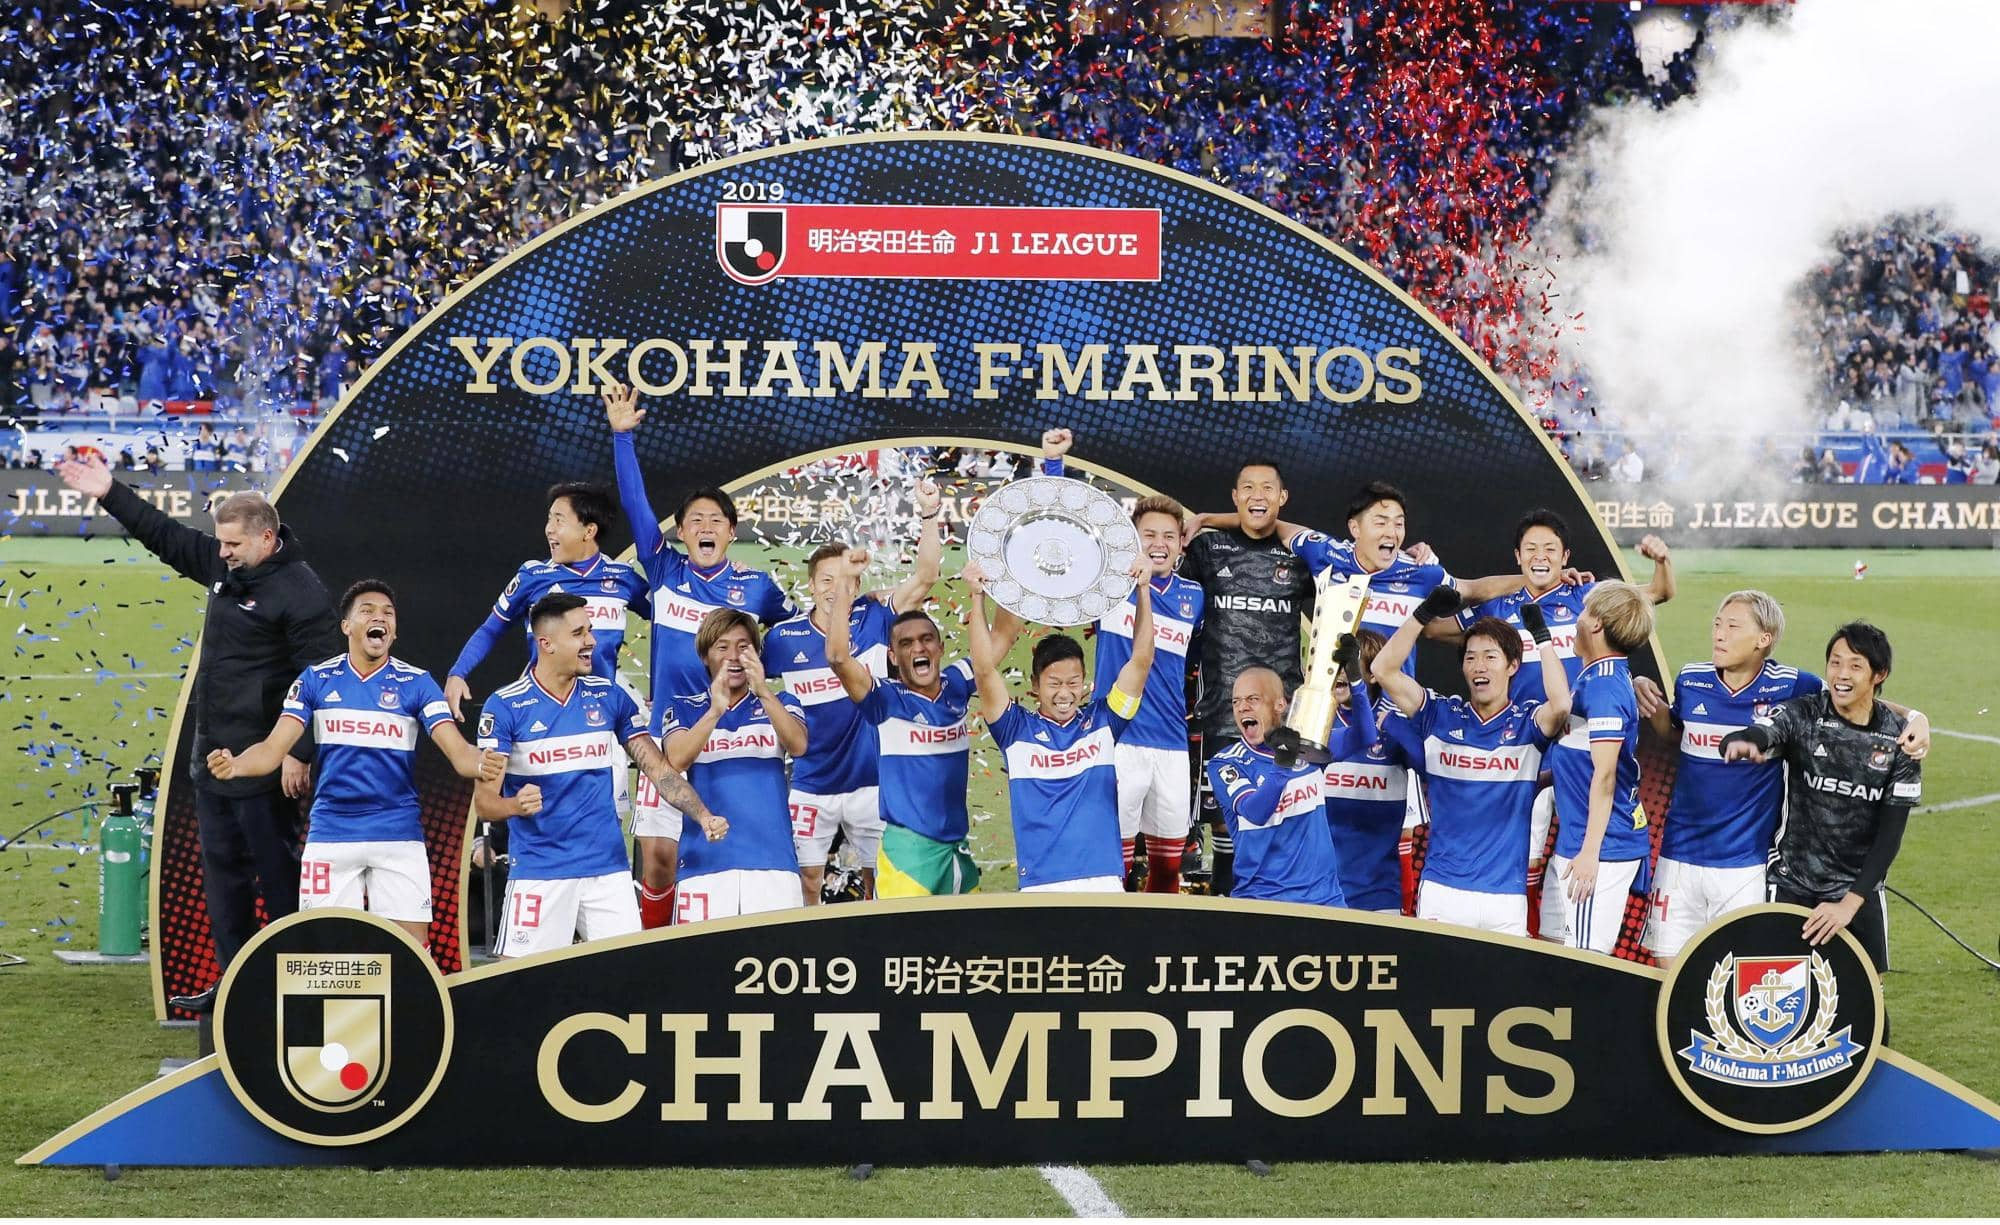 Yokohama F. Marinos players take part in a victory celebration after capturing the J. League first-division title on Saturday by beating FC Tokyo 3-0. | KYODO